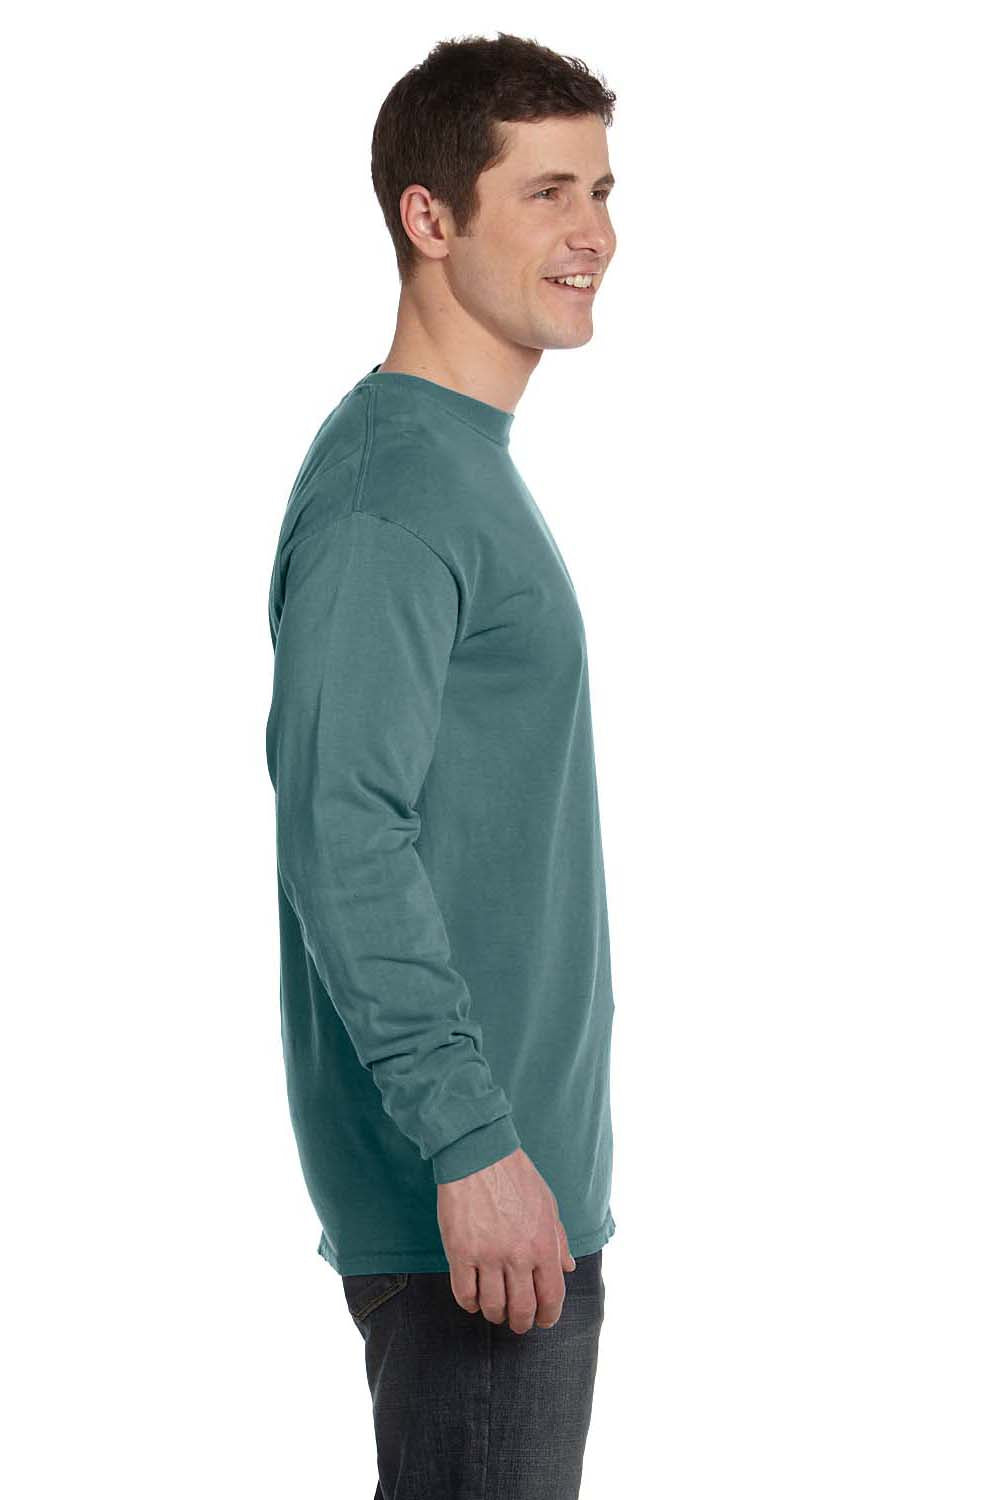 Comfort Colors C6014 Mens Long Sleeve Crewneck T-Shirt Blue Spruce Side